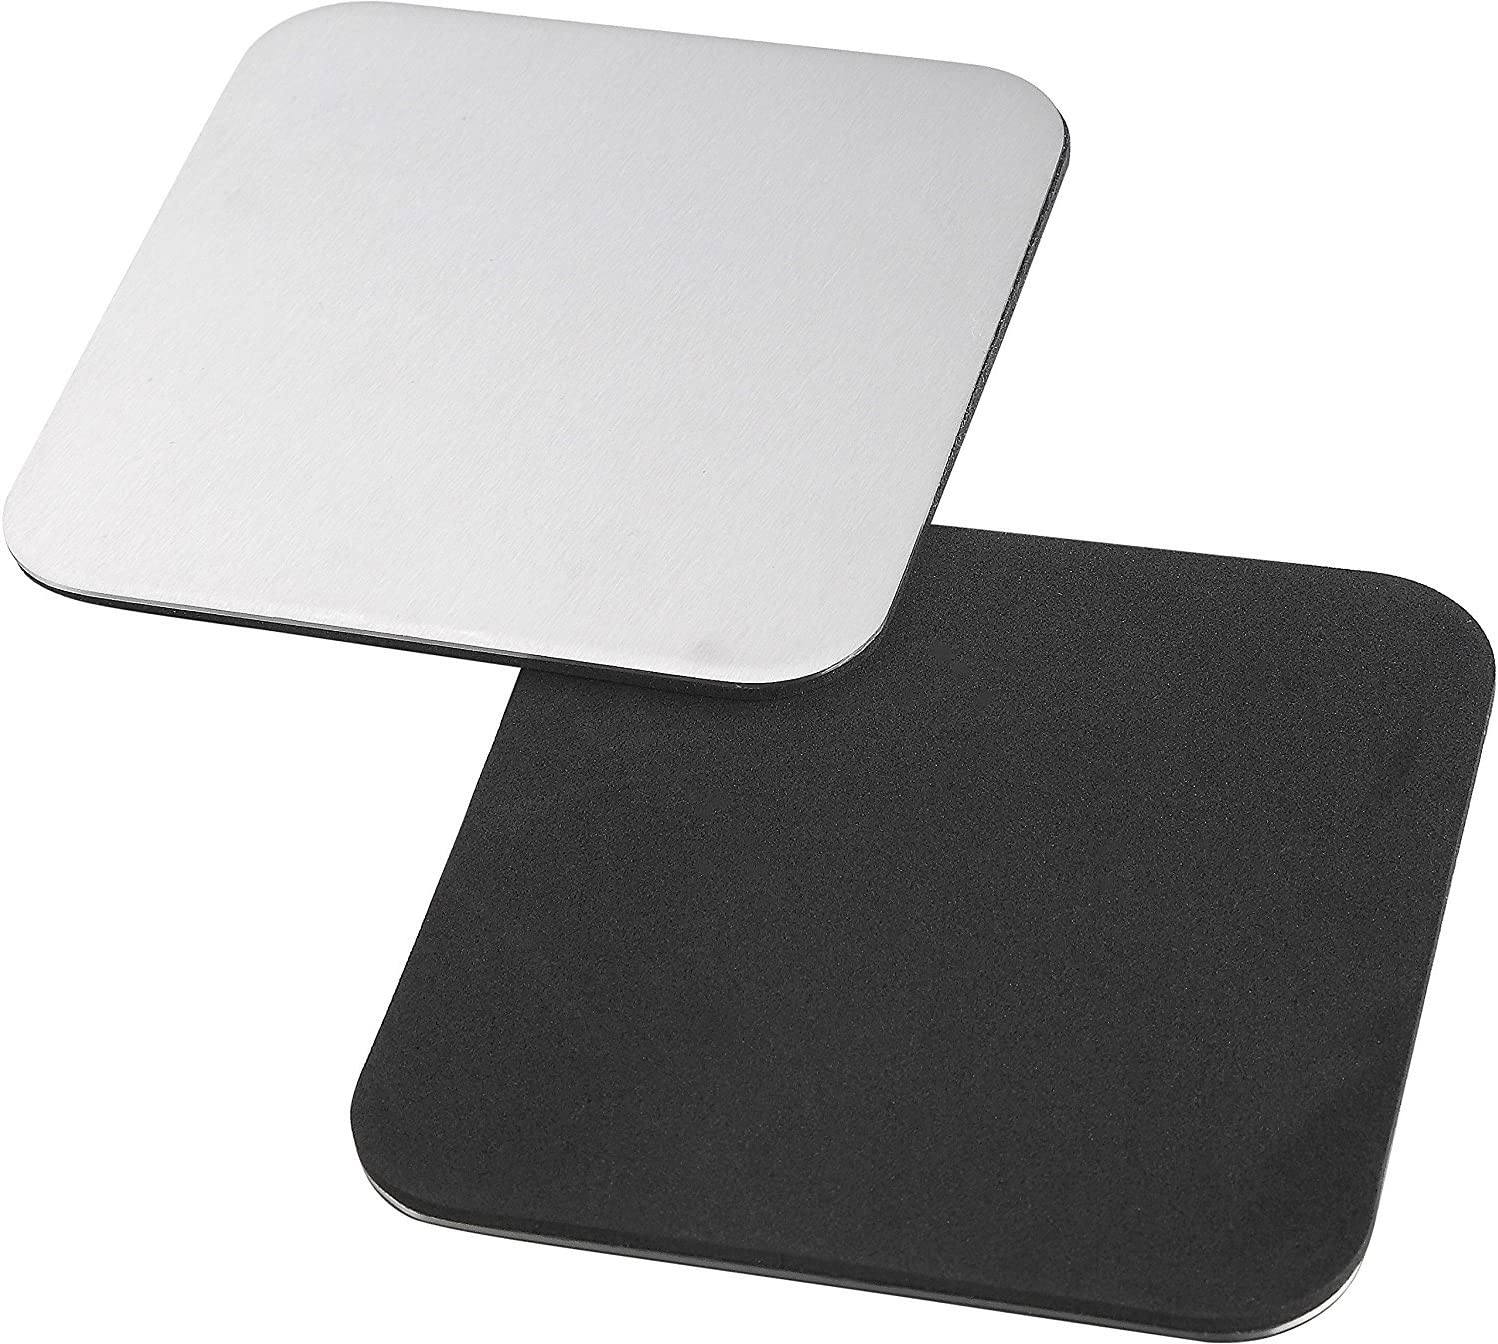 Pro Chef Kitchen Tools Square Coasters for Drinks Bar Accessories Coaster Set with Holder for Coffee Table Decor Stainless Steel Drink Mats Protect Your Furniture from Beer Mugs and Wine Glasses